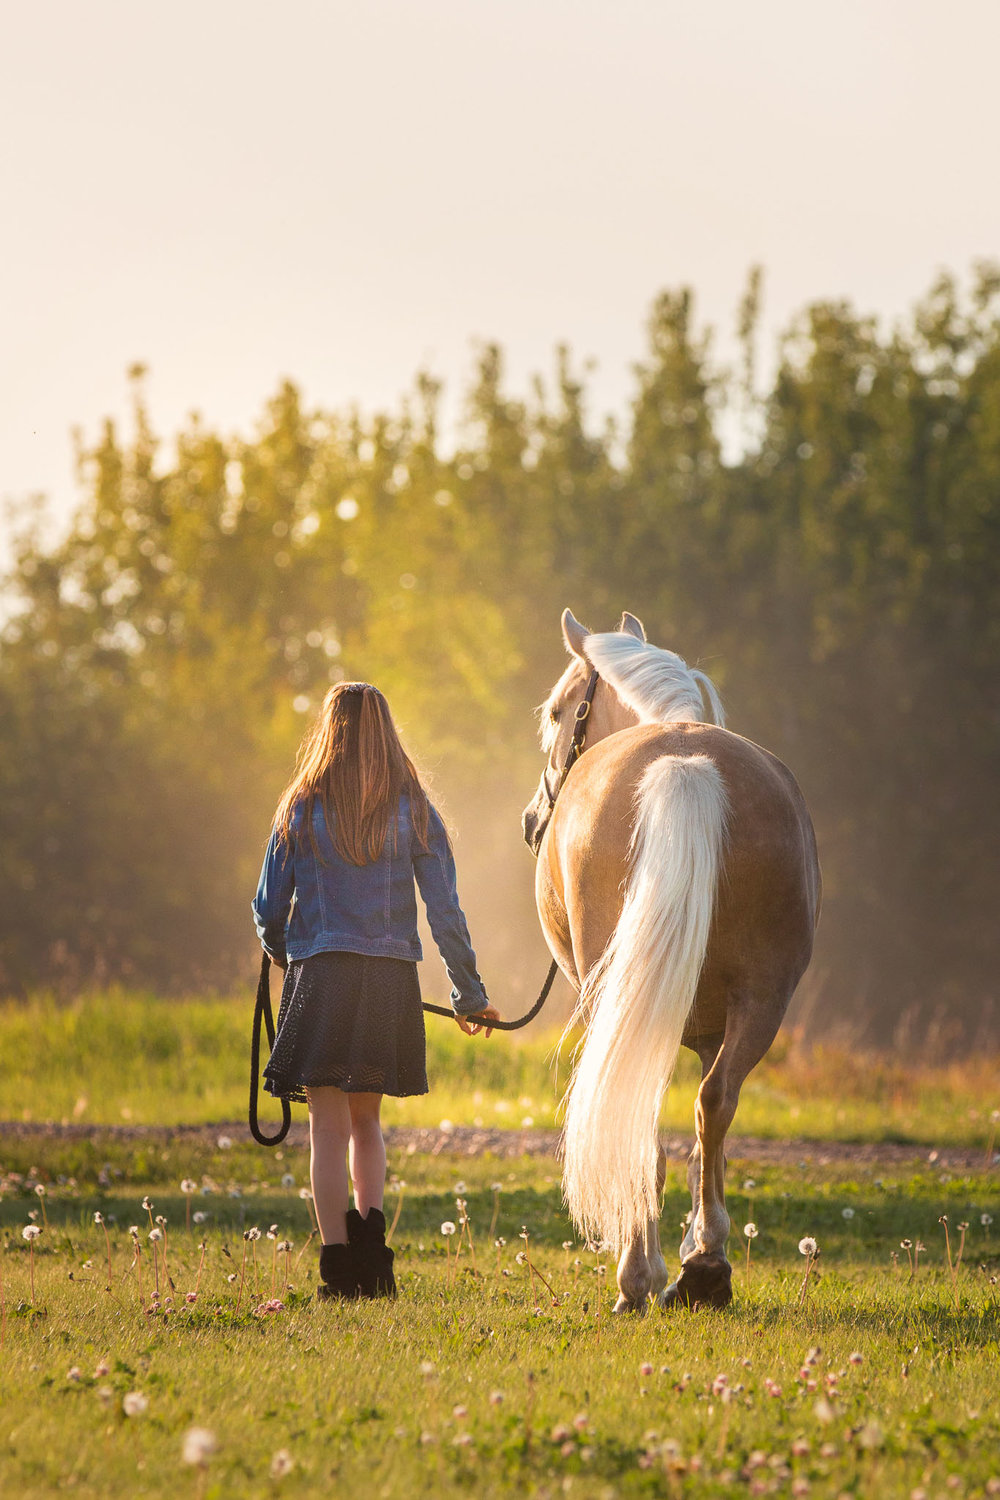 Girl and horse walking